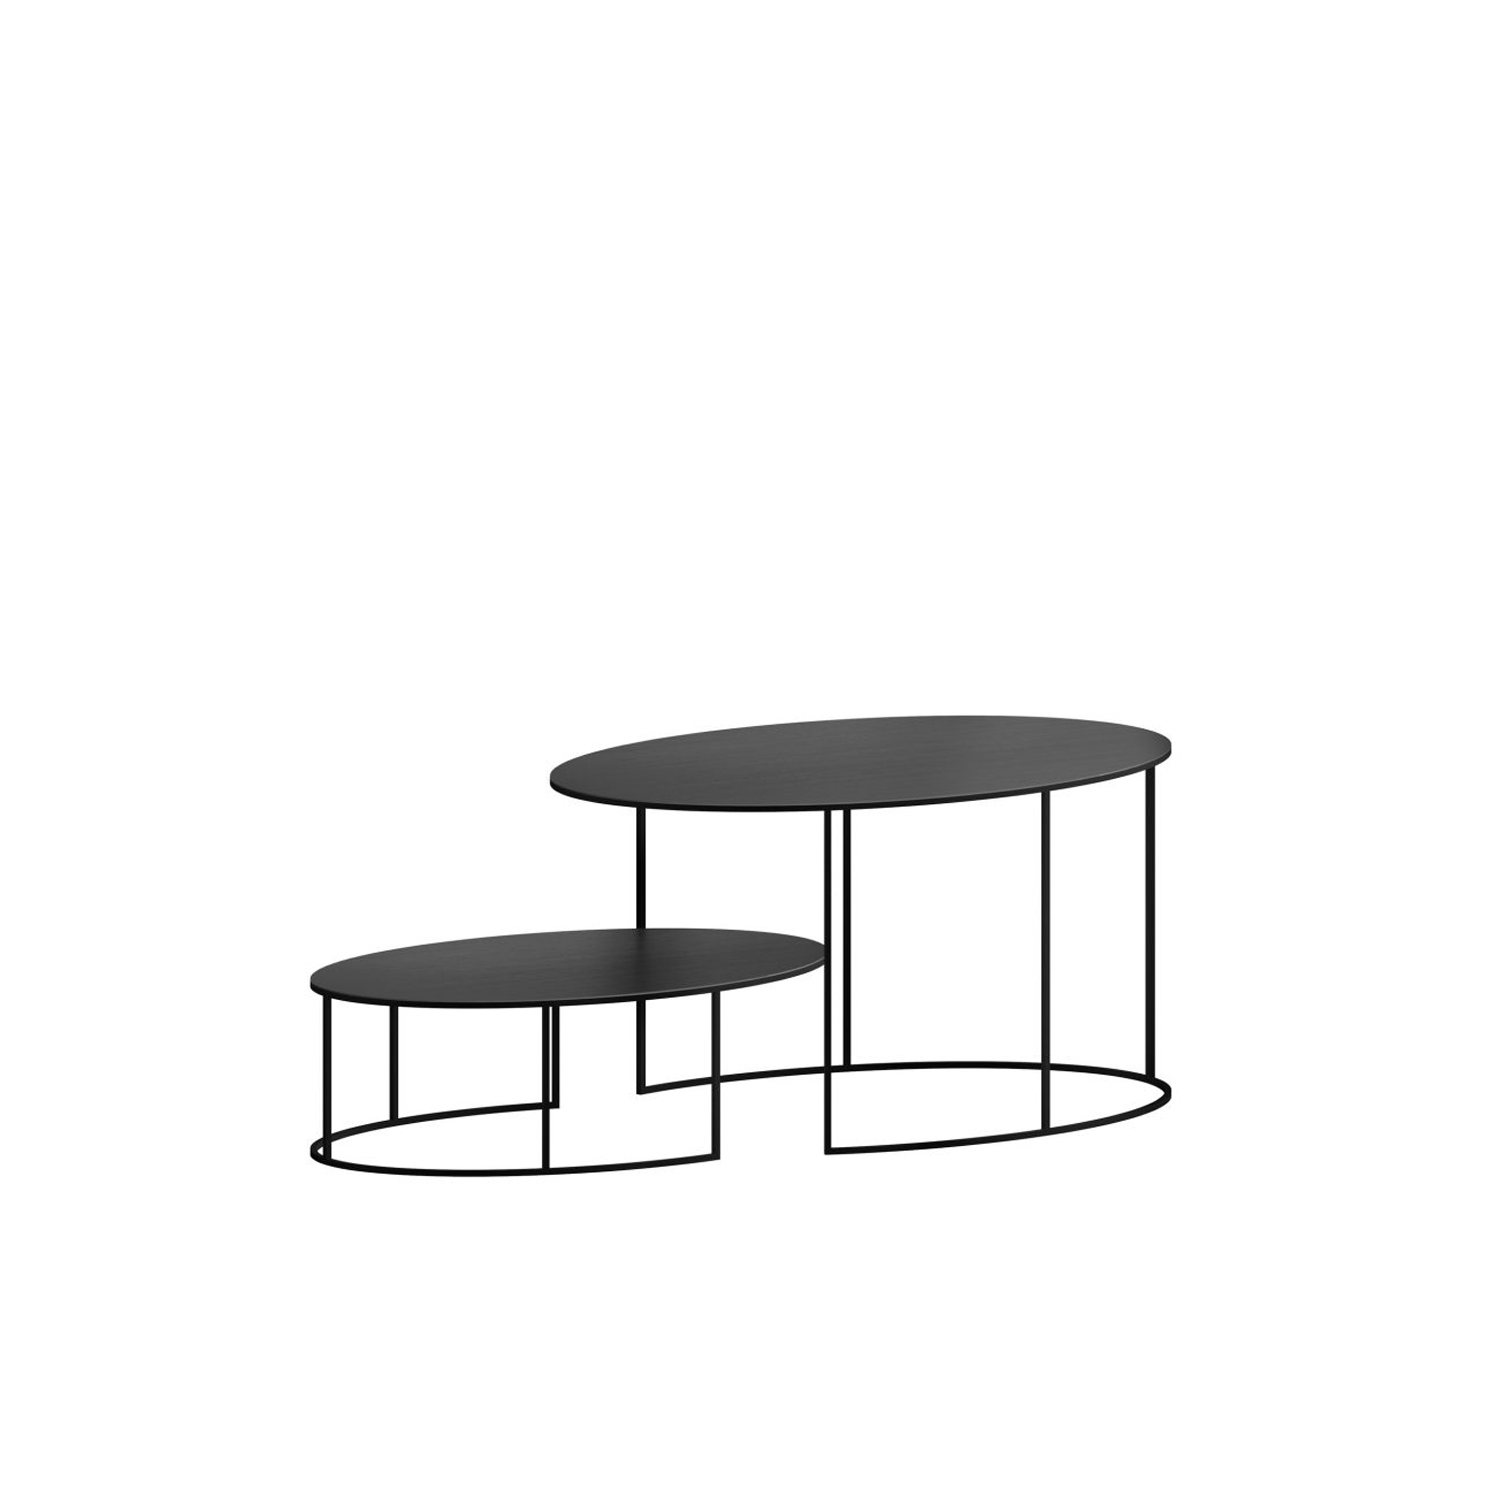 Slim Irony Oval Side Tables - These tables are available in two different sizes and look perfect either separately or together.  Designed by Maurizio Peregalli they have an indusial yet sophisticated look. The frame is in solid drawn tube 8x8 mm and they have a 2mm sheet steel top which can be painted in either Copper Black Sand-Touch Epoxy Painted or Semi Opaque White.   | Matter of Stuff